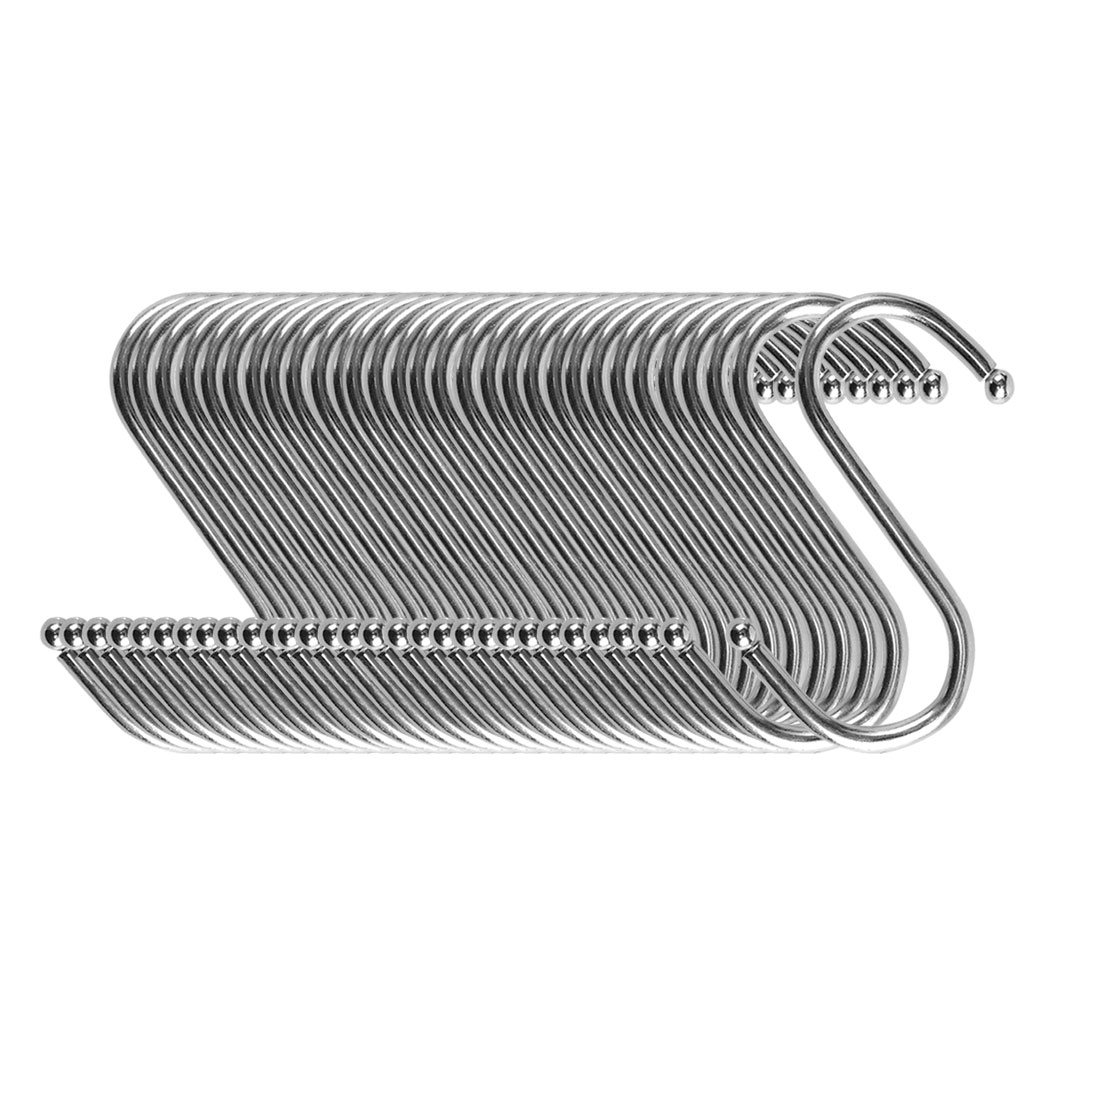 S Shape Hook Rack Stainless Steel for Kitchenware Clothes Towels Holder 30 Pack